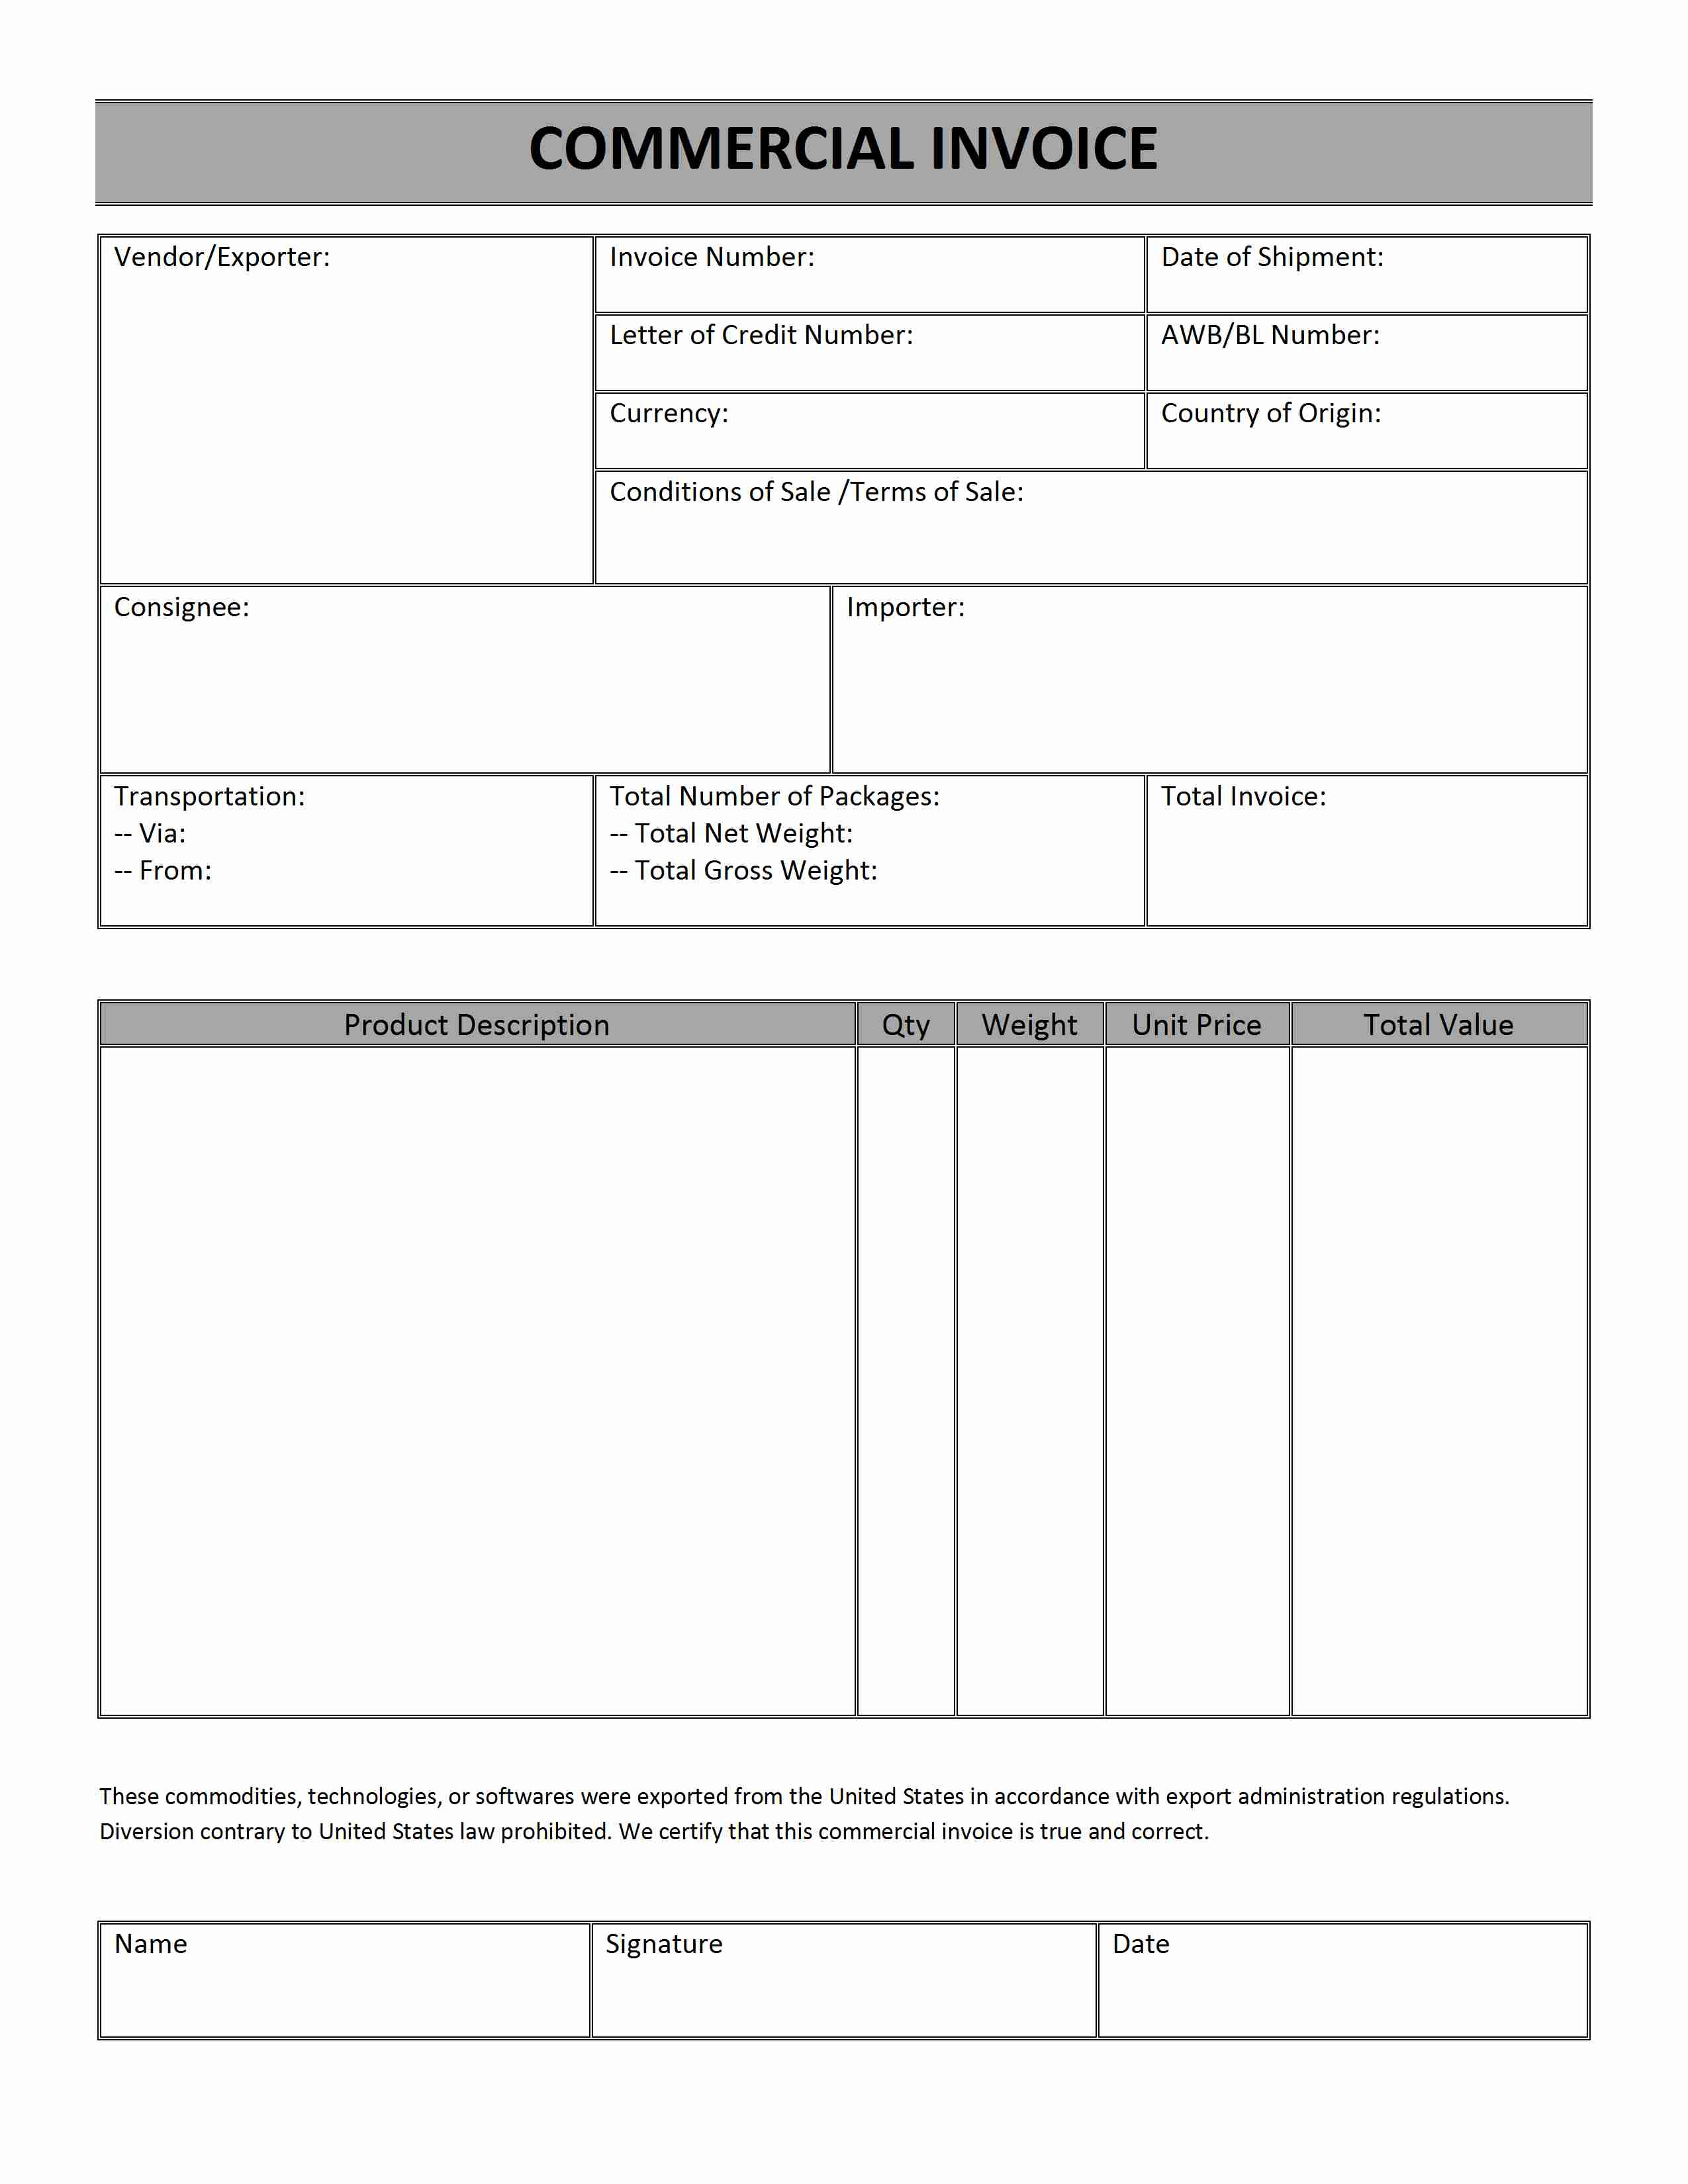 Usdgus  Pleasing Printable Sales Invoice Simple Invoice Form Free Invoice  With Extraordinary Printable Receipt Free  Free Printable Raffle Tickets  Receipt   Printable With Nice Receipts For Taxes Also Read Receipt Outlook  In Addition Ulta Return No Receipt And Create Receipt As Well As Paid Receipt Additionally Rent Receipt Form From Happytomco With Usdgus  Extraordinary Printable Sales Invoice Simple Invoice Form Free Invoice  With Nice Printable Receipt Free  Free Printable Raffle Tickets  Receipt   Printable And Pleasing Receipts For Taxes Also Read Receipt Outlook  In Addition Ulta Return No Receipt From Happytomco